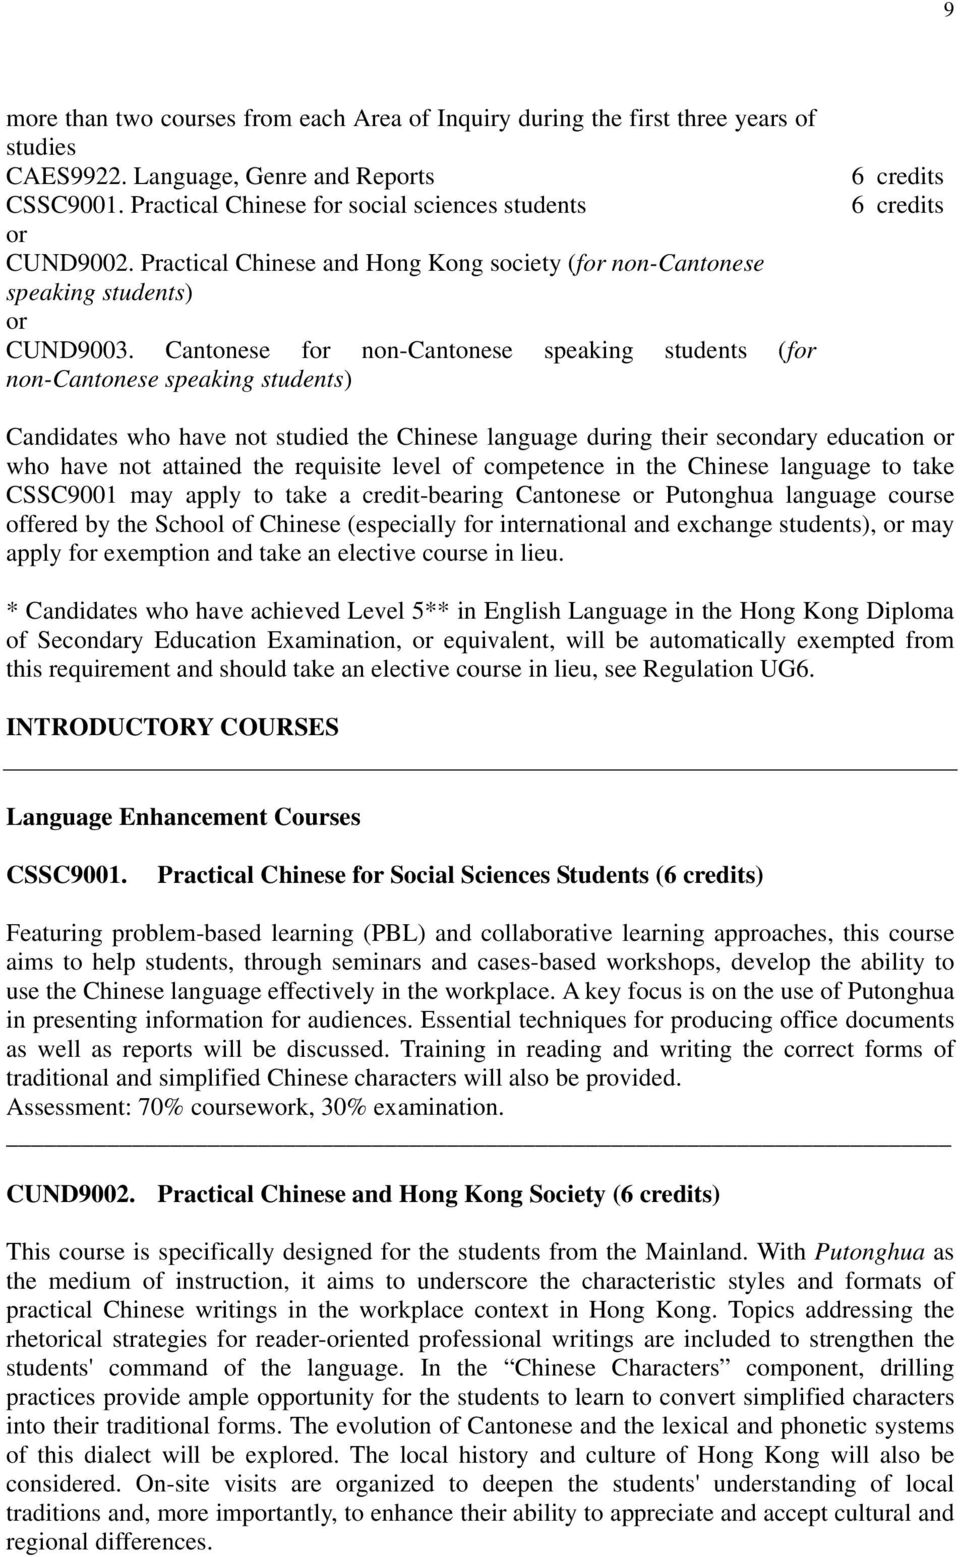 Cantonese for non-cantonese speaking students (for non-cantonese speaking students) 6 credits 6 credits Candidates who have not studied the Chinese language during their secondary education or who